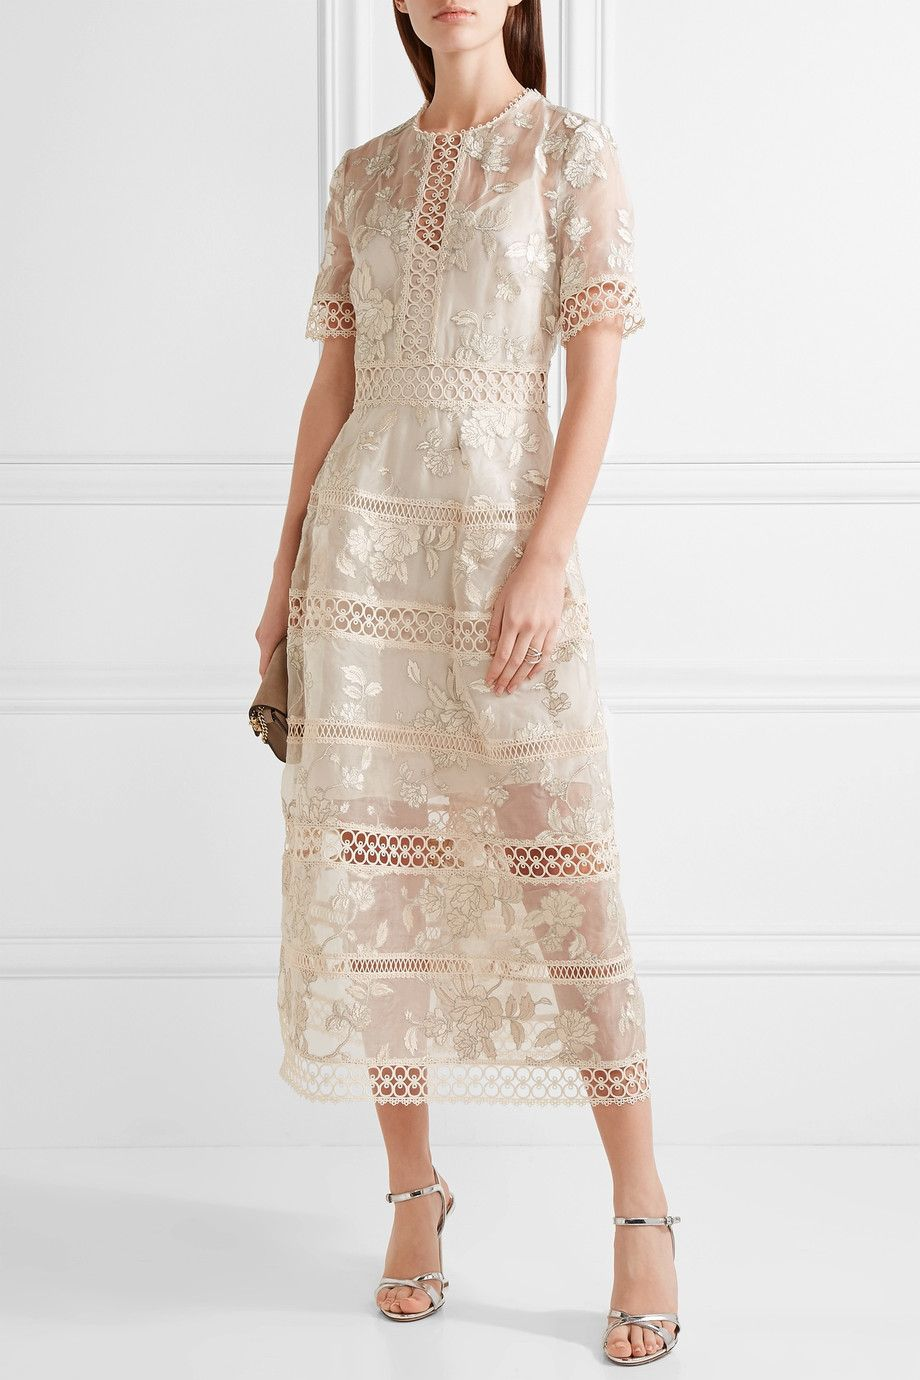 Zimmermann embroidered ruffle midi dress - Blanco mlEYh4H